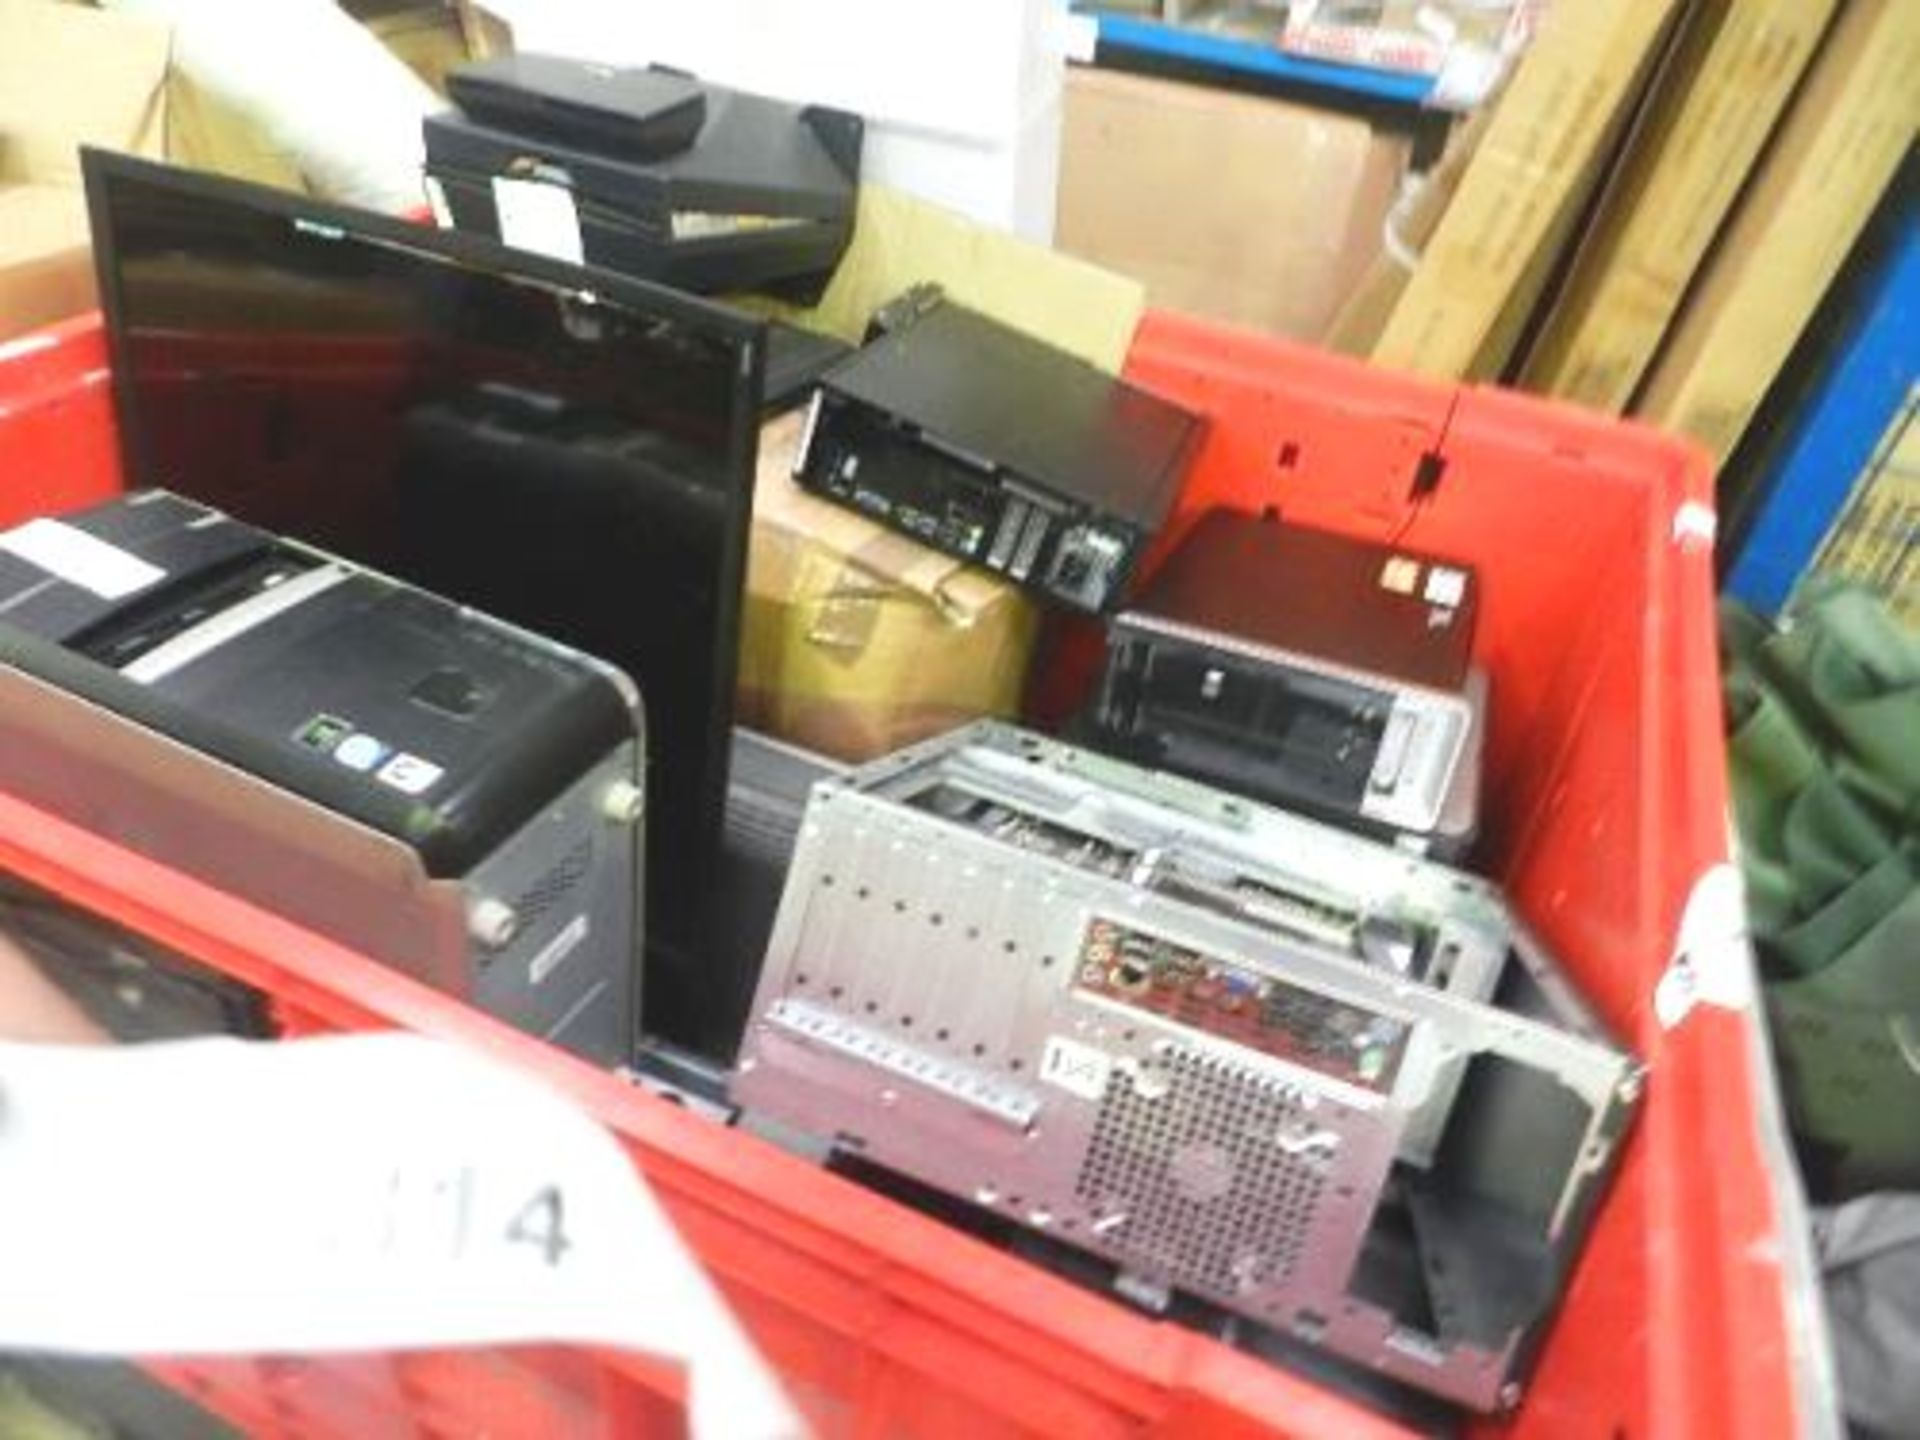 Lot 814 - A quantity of electronics including desktop computers, TV's etc. - Spares and repairs (GSF47)